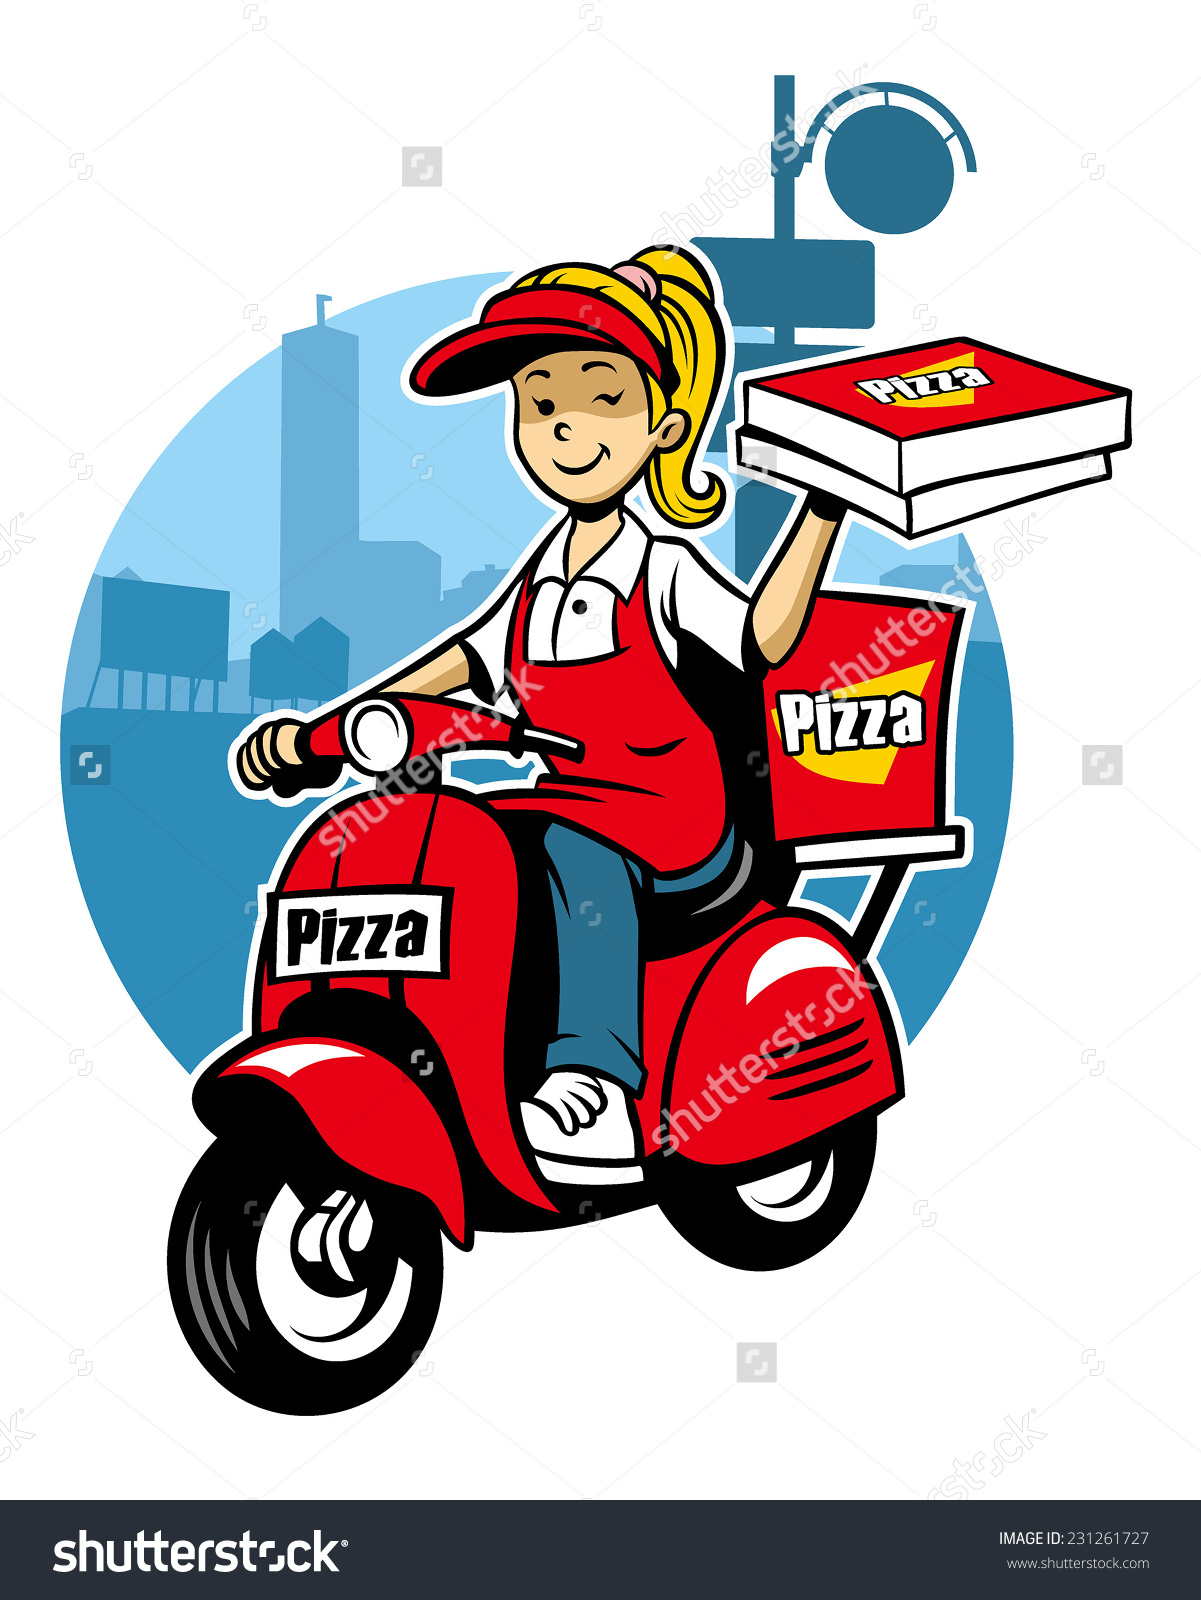 Girl Pizza Delivery Service Ride Scooter Stock Vector 231261727.